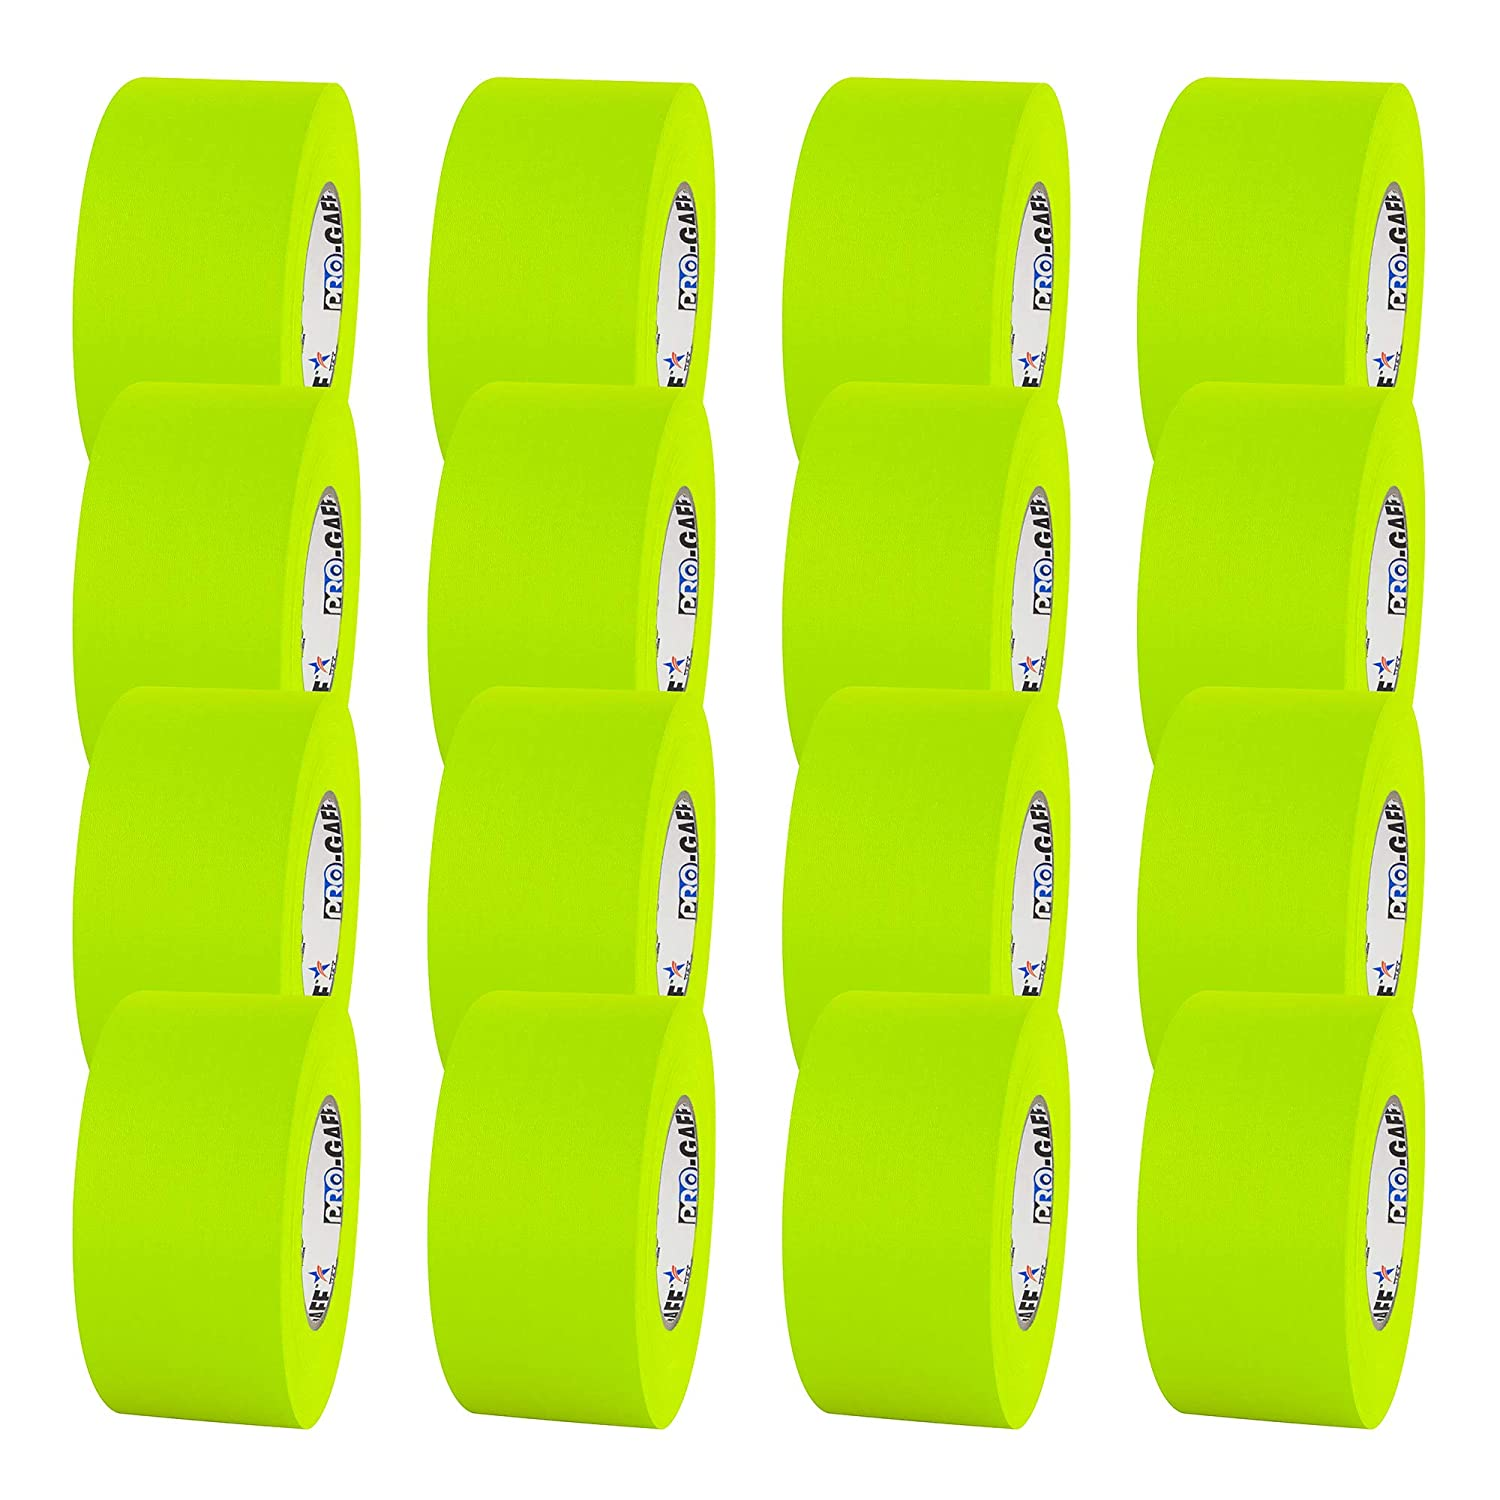 11 mils Thick ProTapes Pro Gaff Premium Matte Cloth Gaffers Tape With Rubber Adhesive 55 yds Length Pack of 1 Green 3 Width